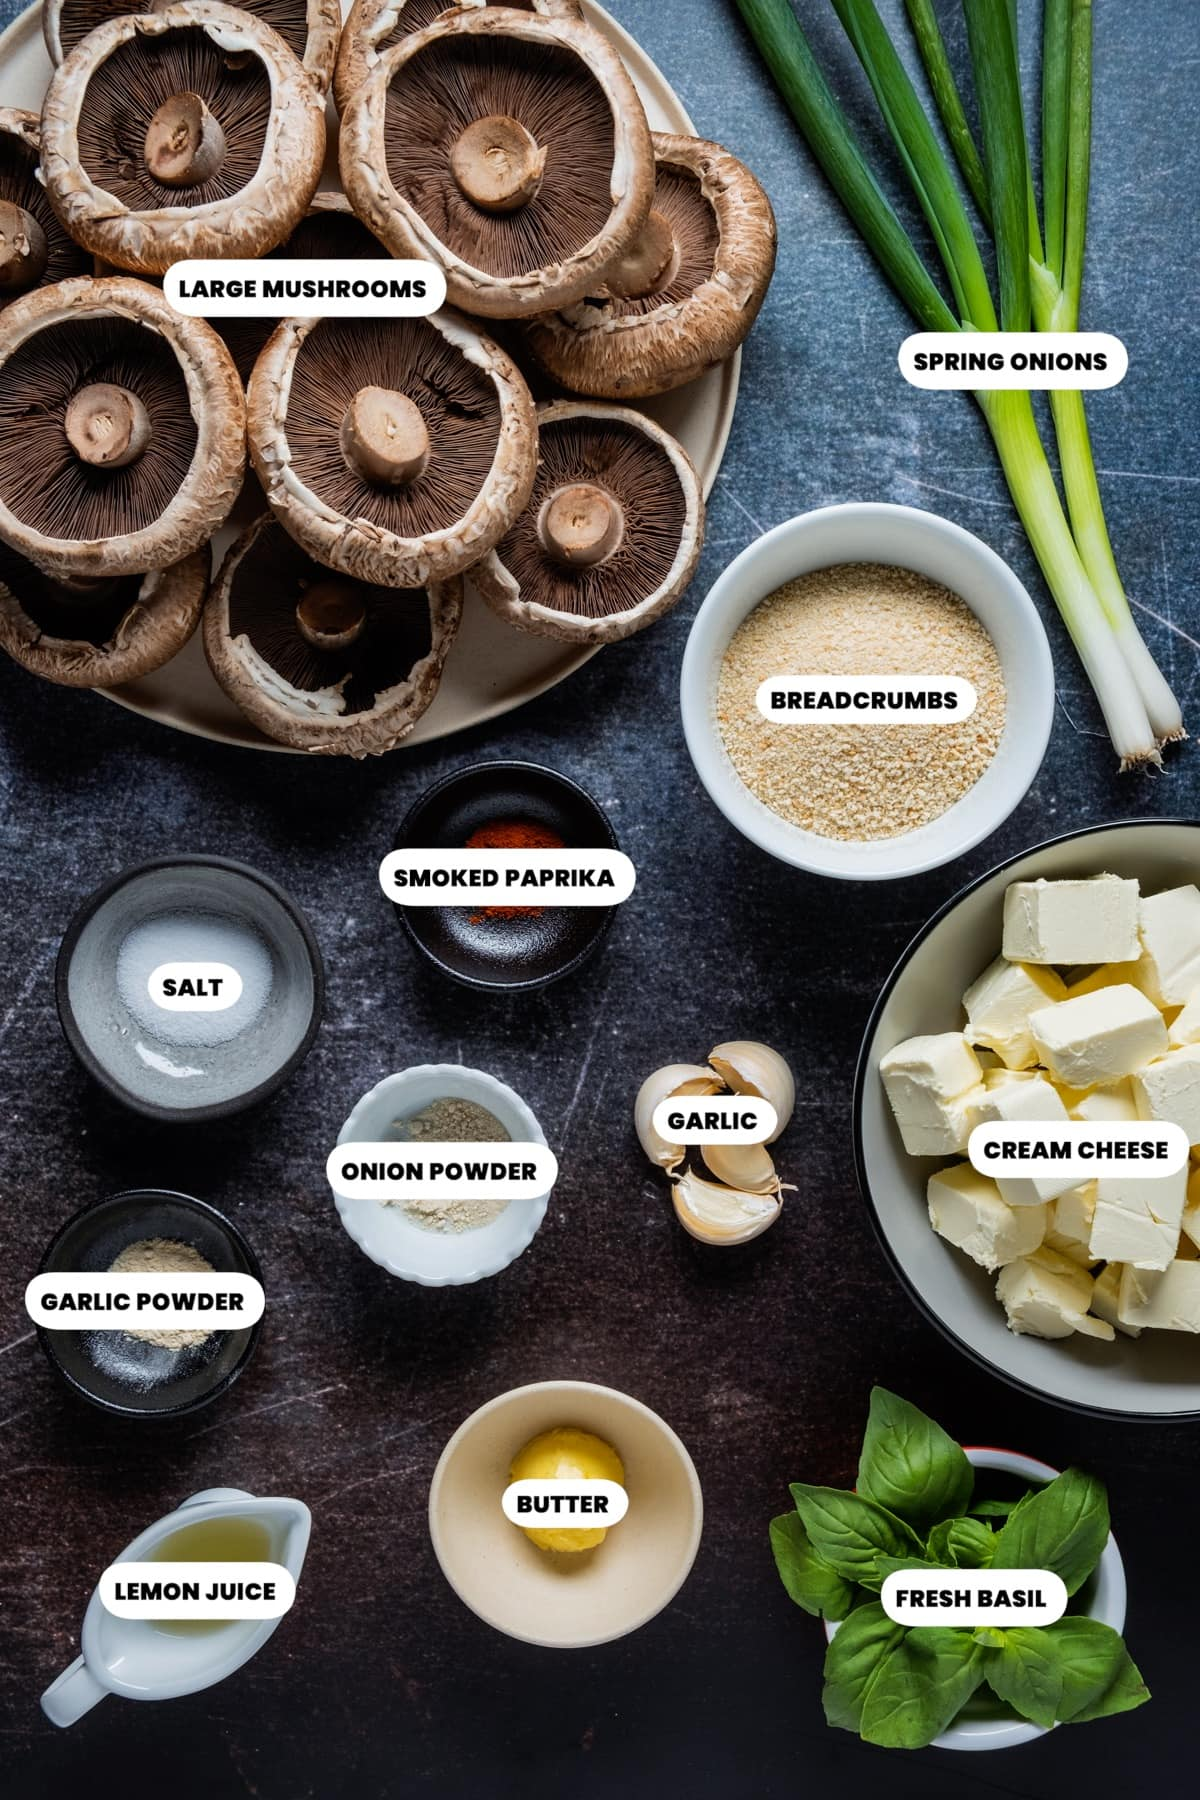 Photo of the ingredients needed to make vegetarian stuffed mushrooms.